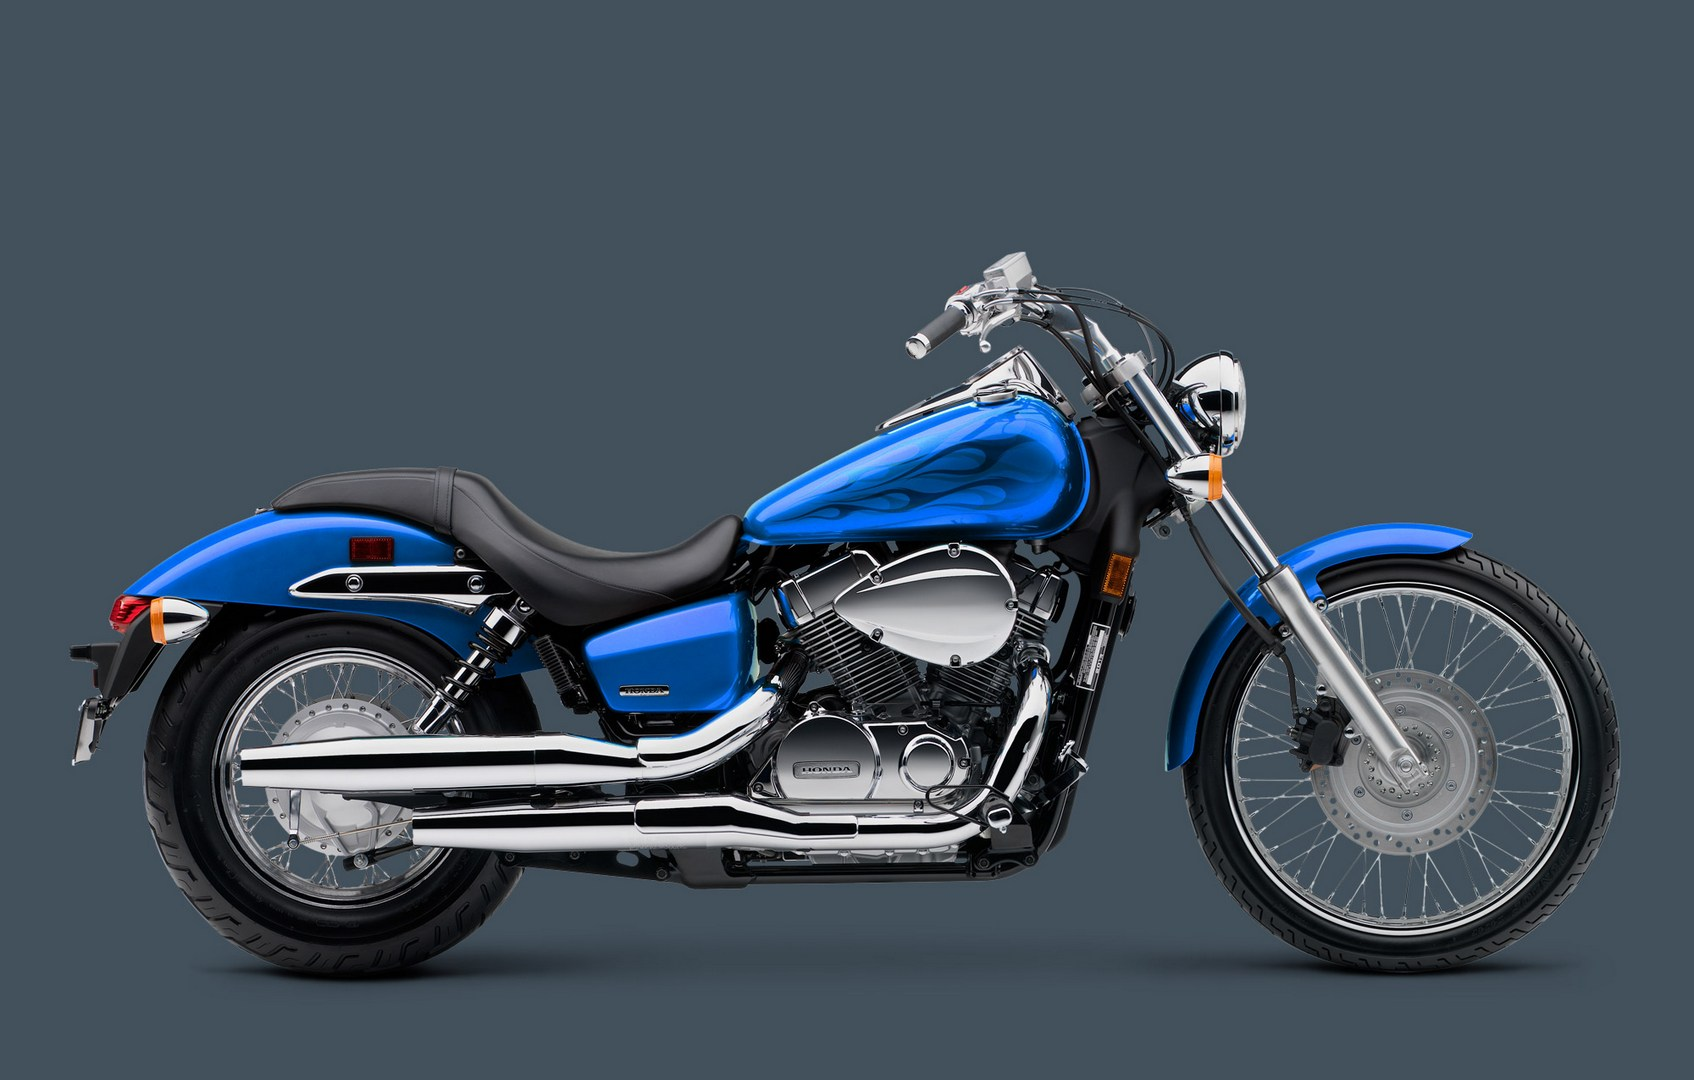 2013 Shadow Spirit 750 Honda S Classic Approach To